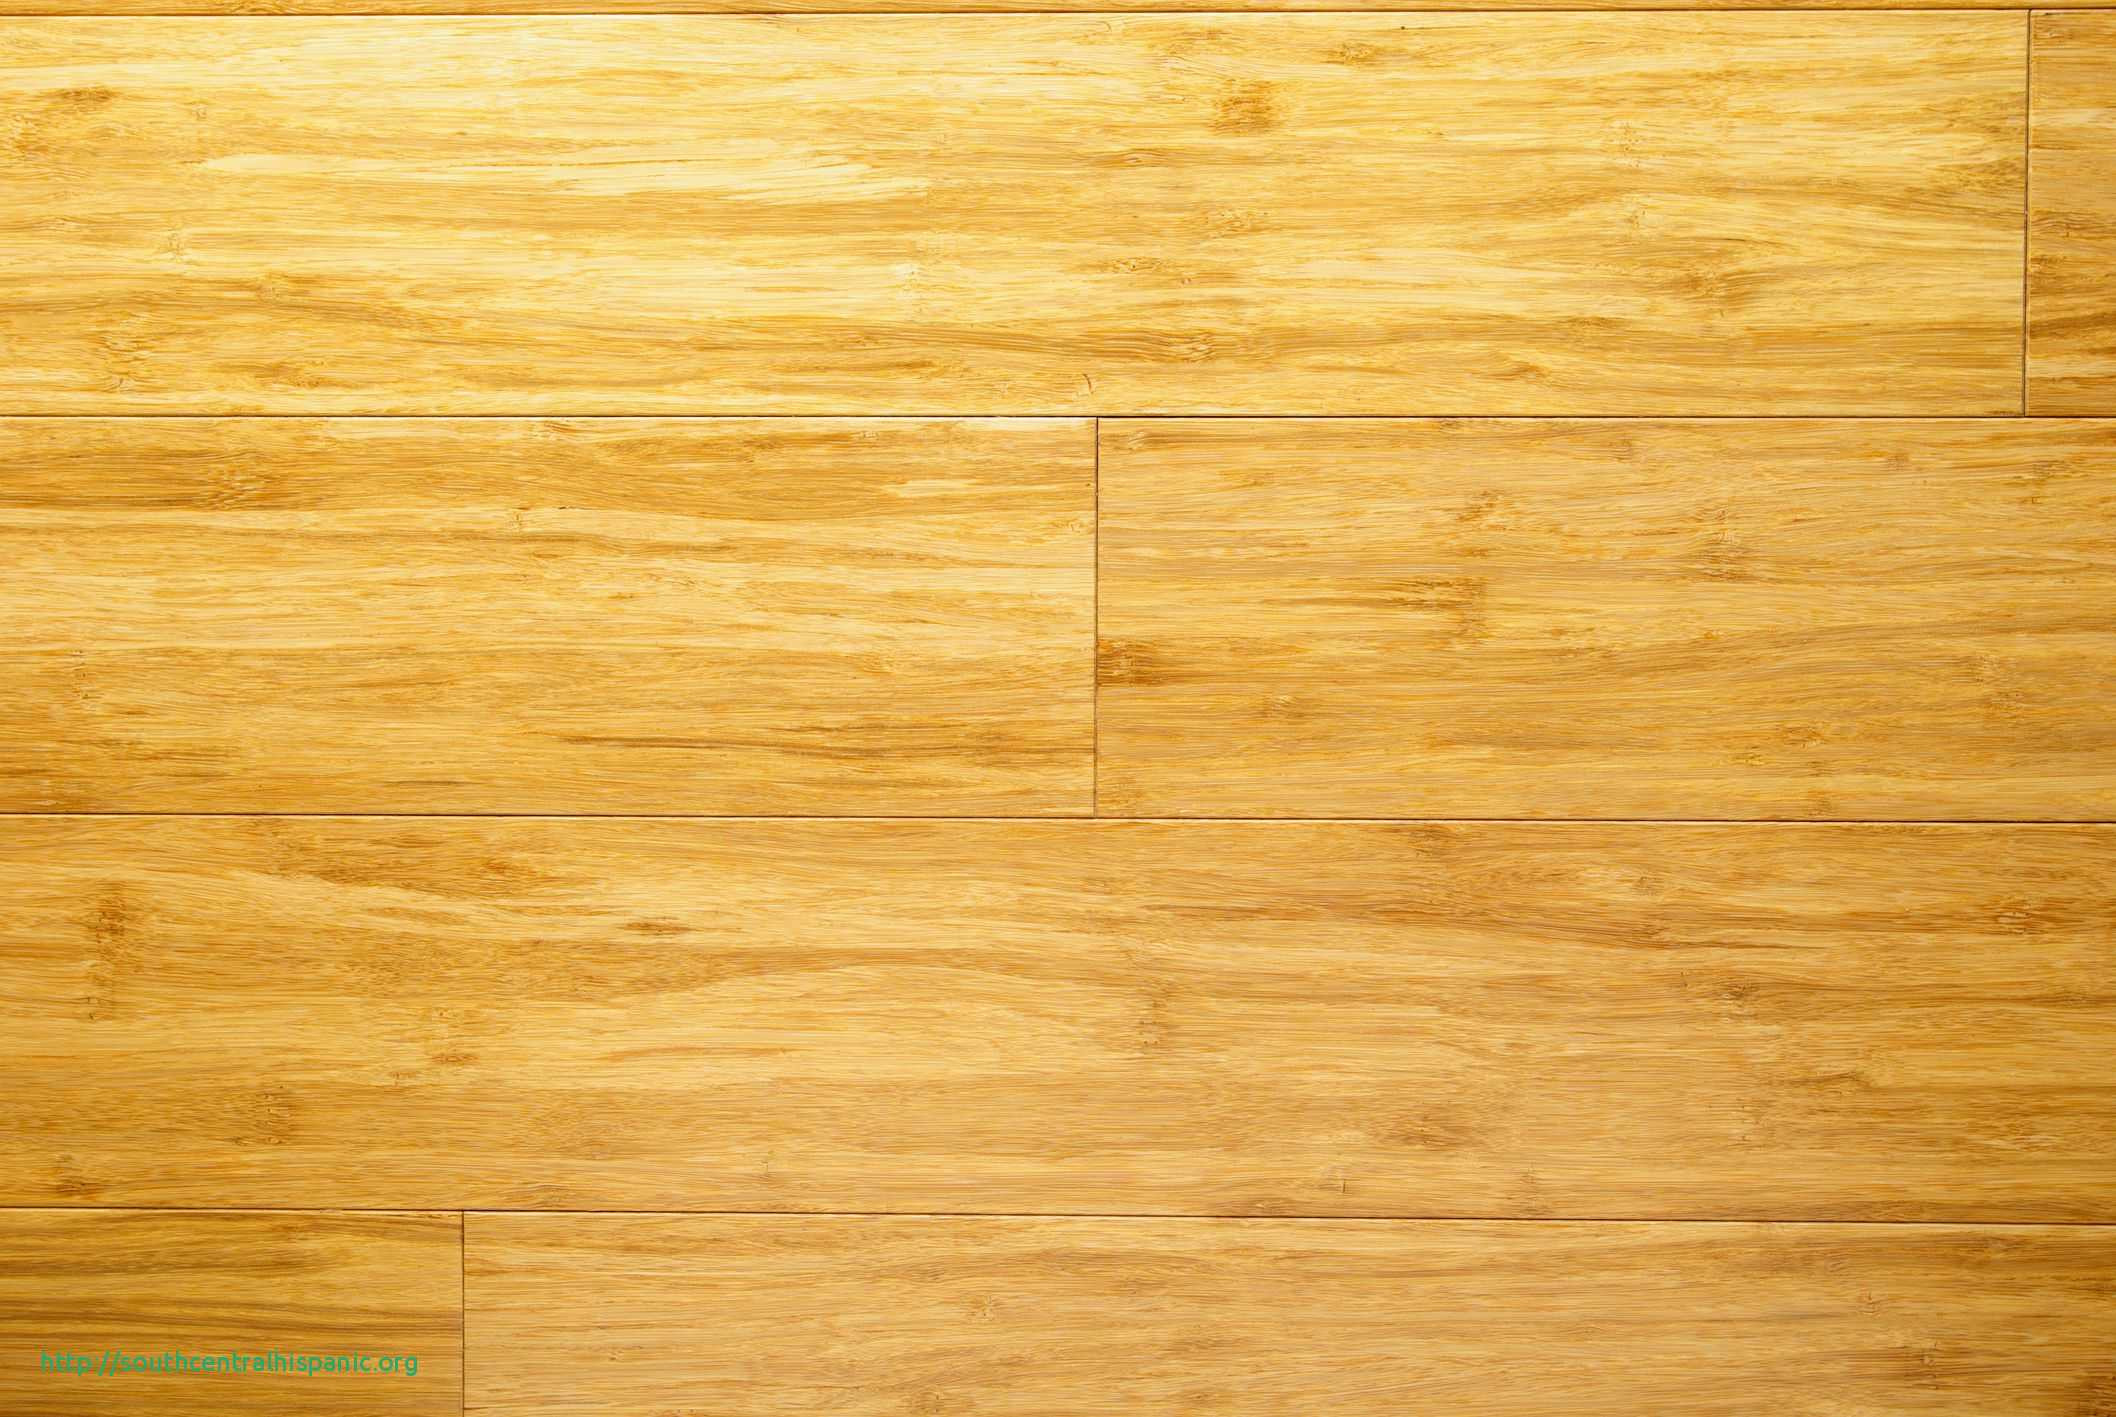 bruce hardwood floor cleaner lowes of 19 a‰lagant how to remove hardwood floor scratches ideas blog for how to remove hardwood floor scratches luxe high traffic and mercial bamboo flooring information